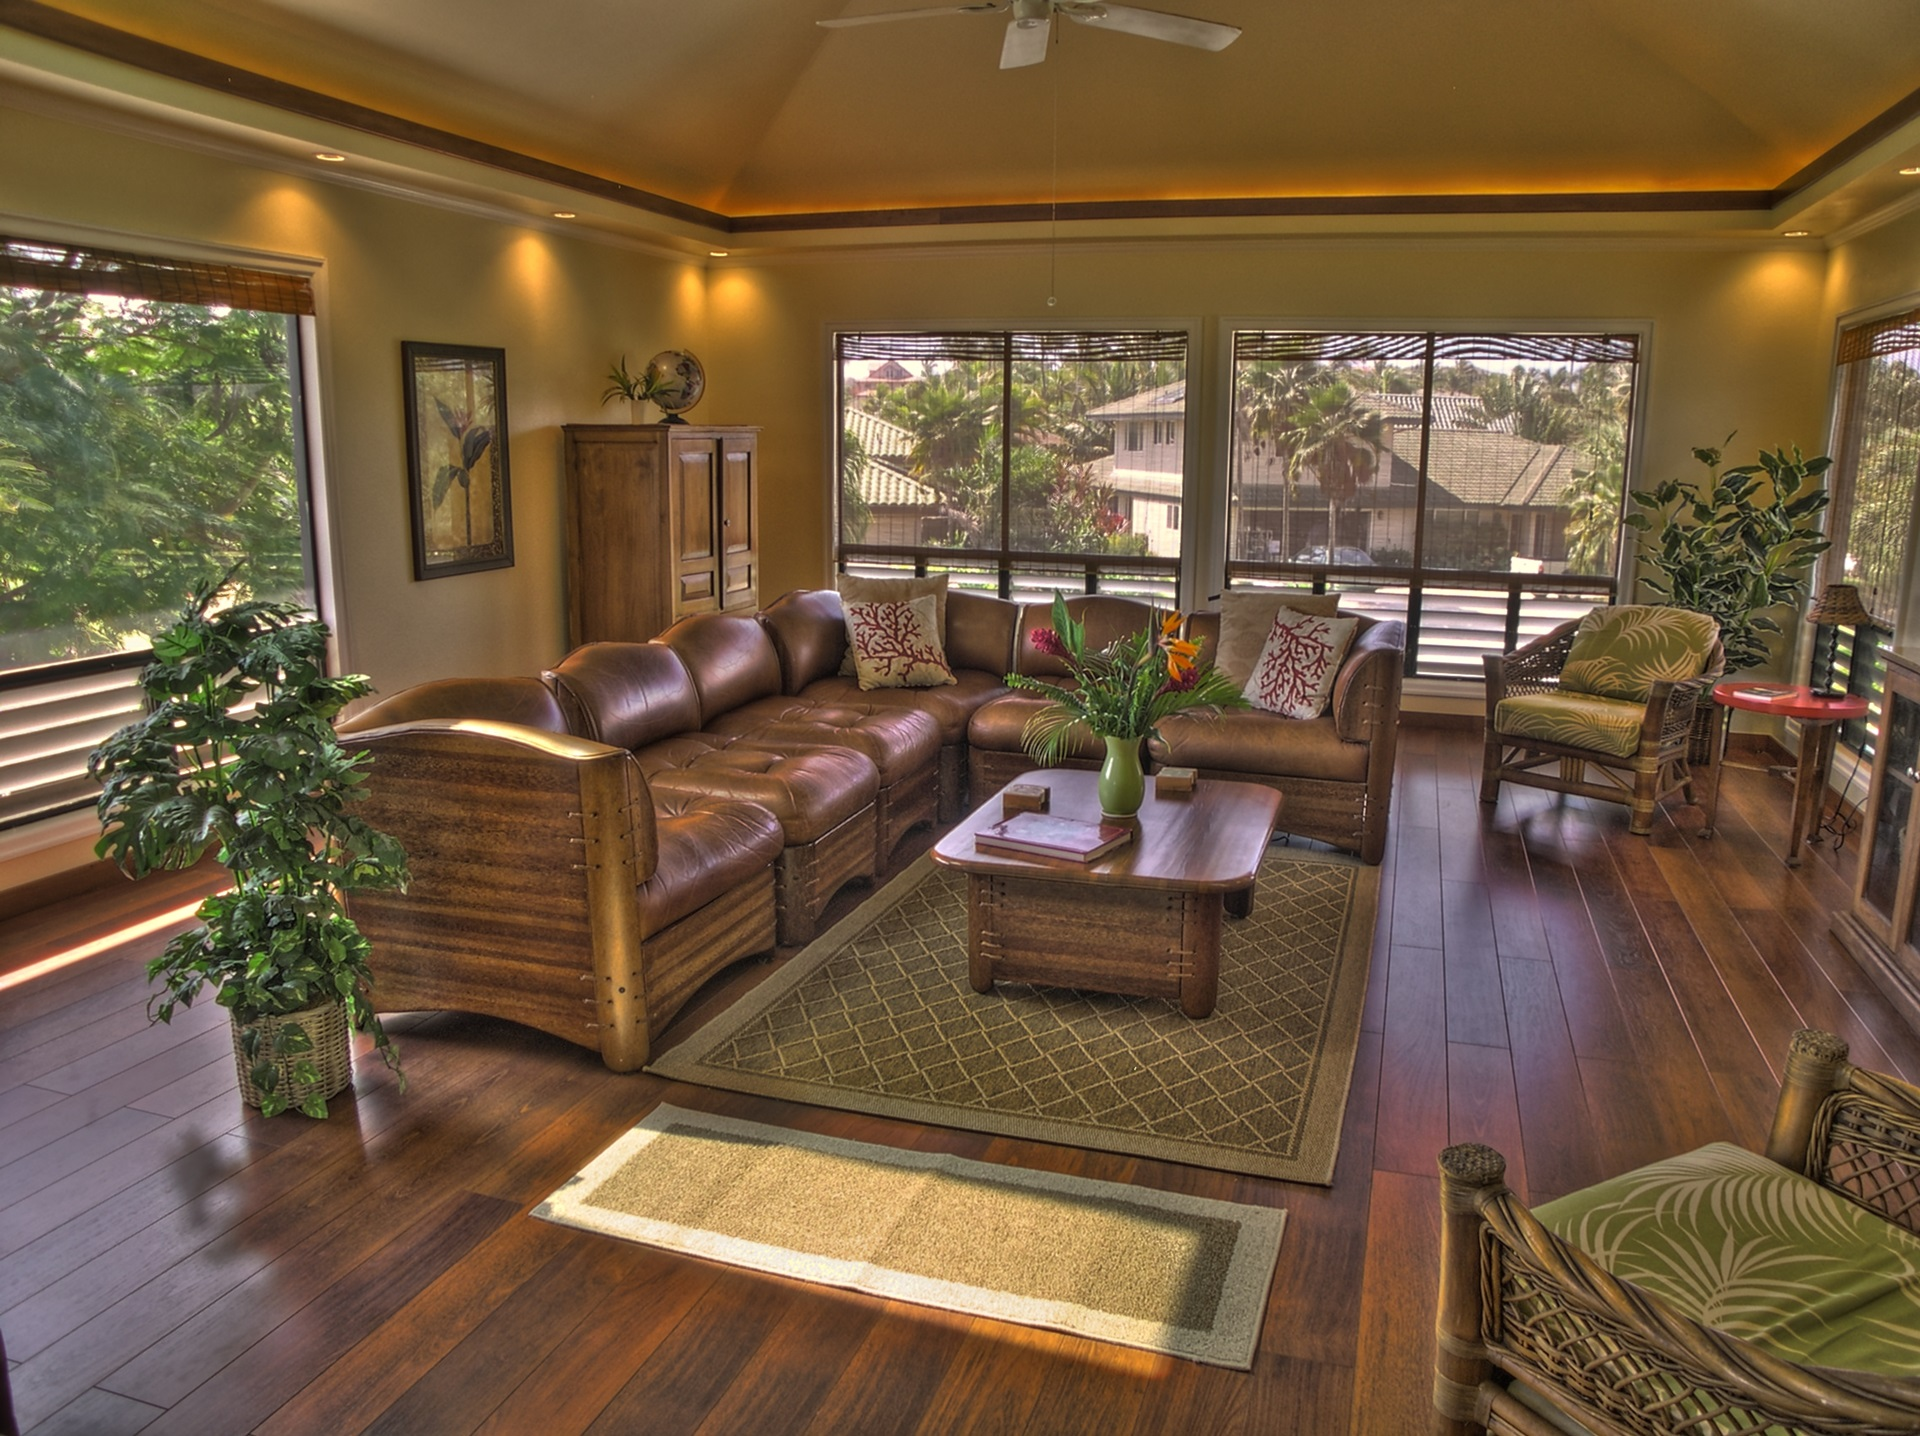 Spacious, comfortable living and gathering area